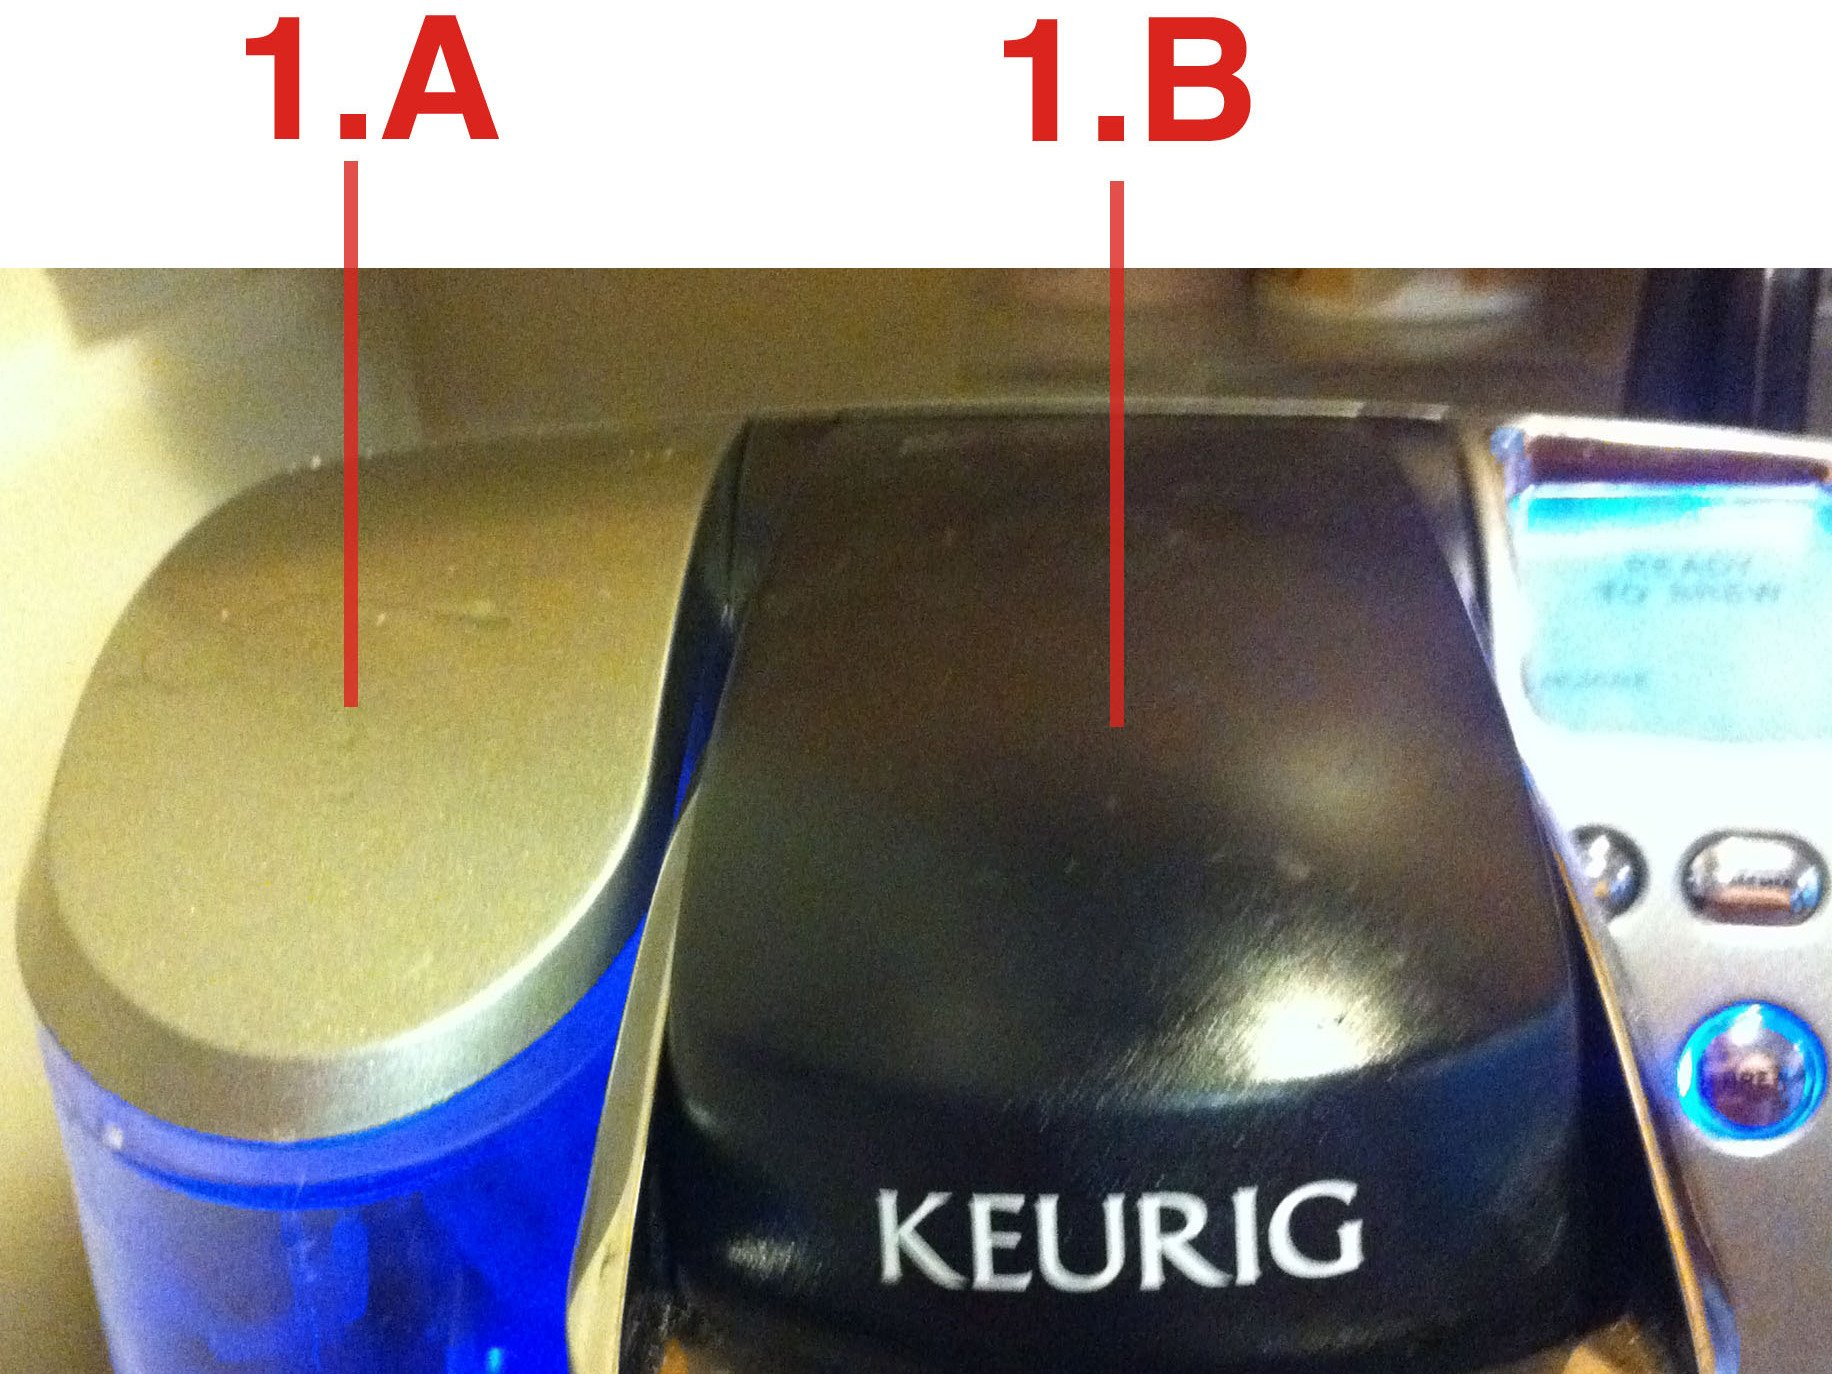 How To Clean The Top Needle Of The Keurig B77 Ifixit Repair Guide